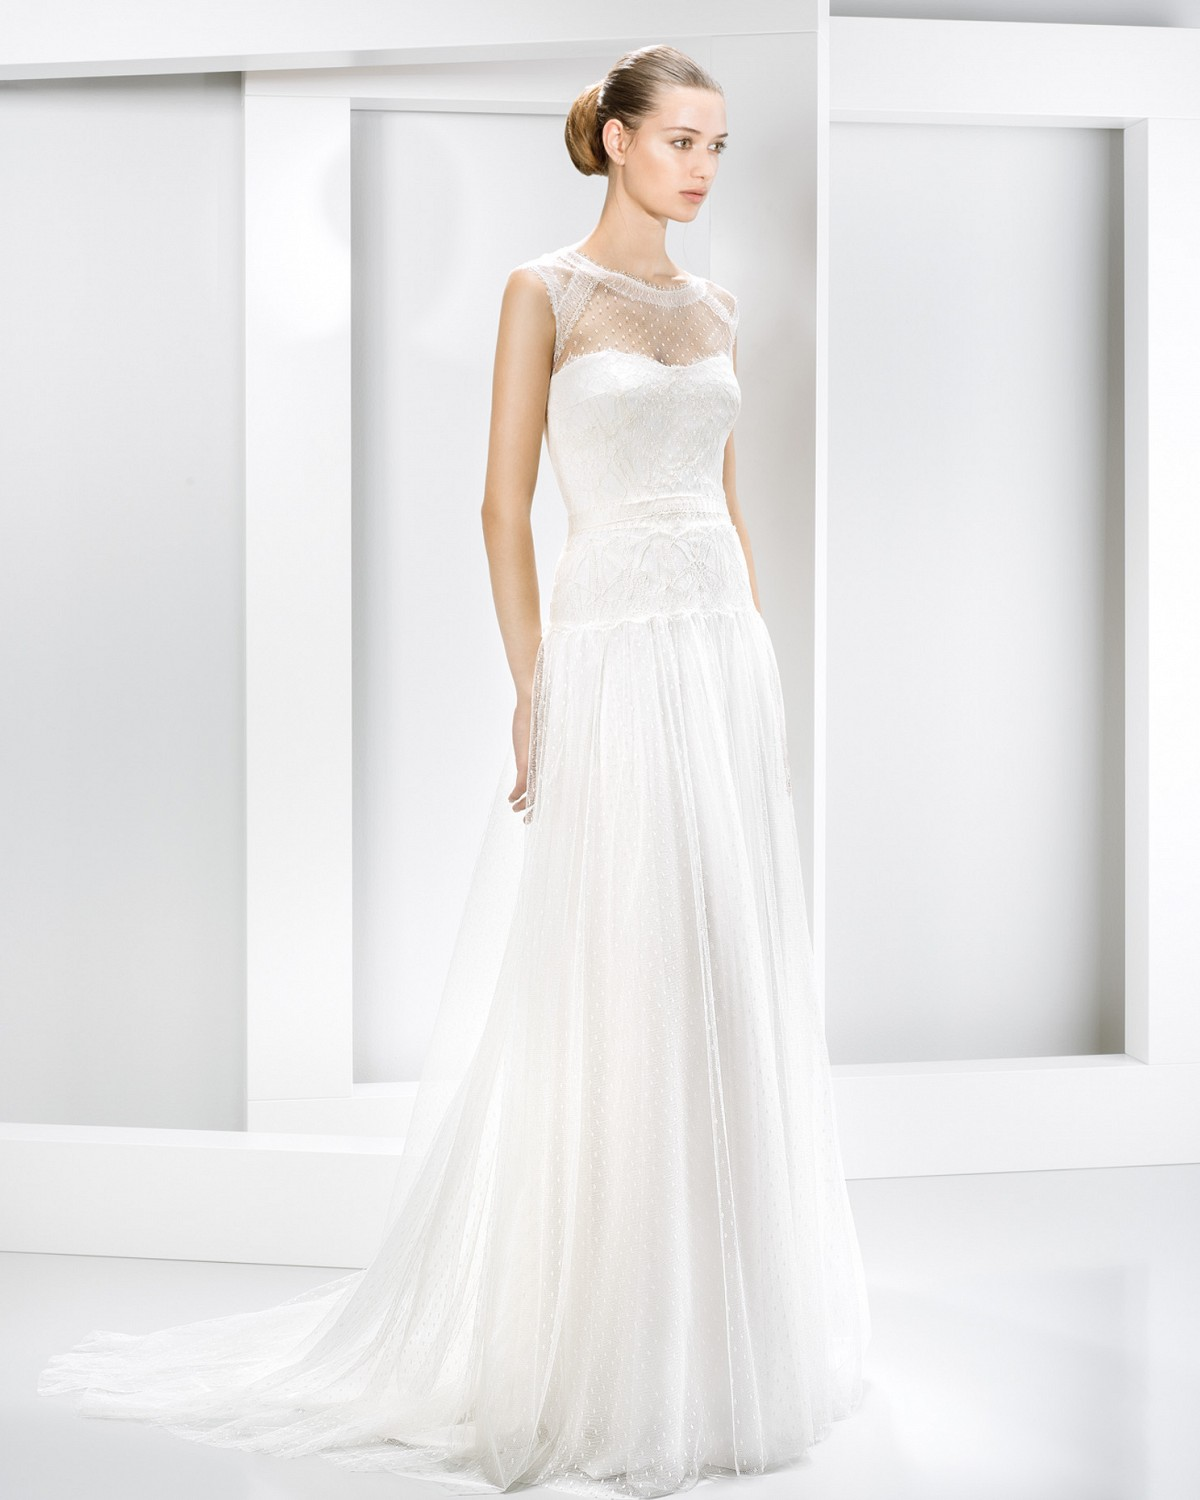 Vintage Sleeveless Lace Pattern Tulle Wedding Dress with